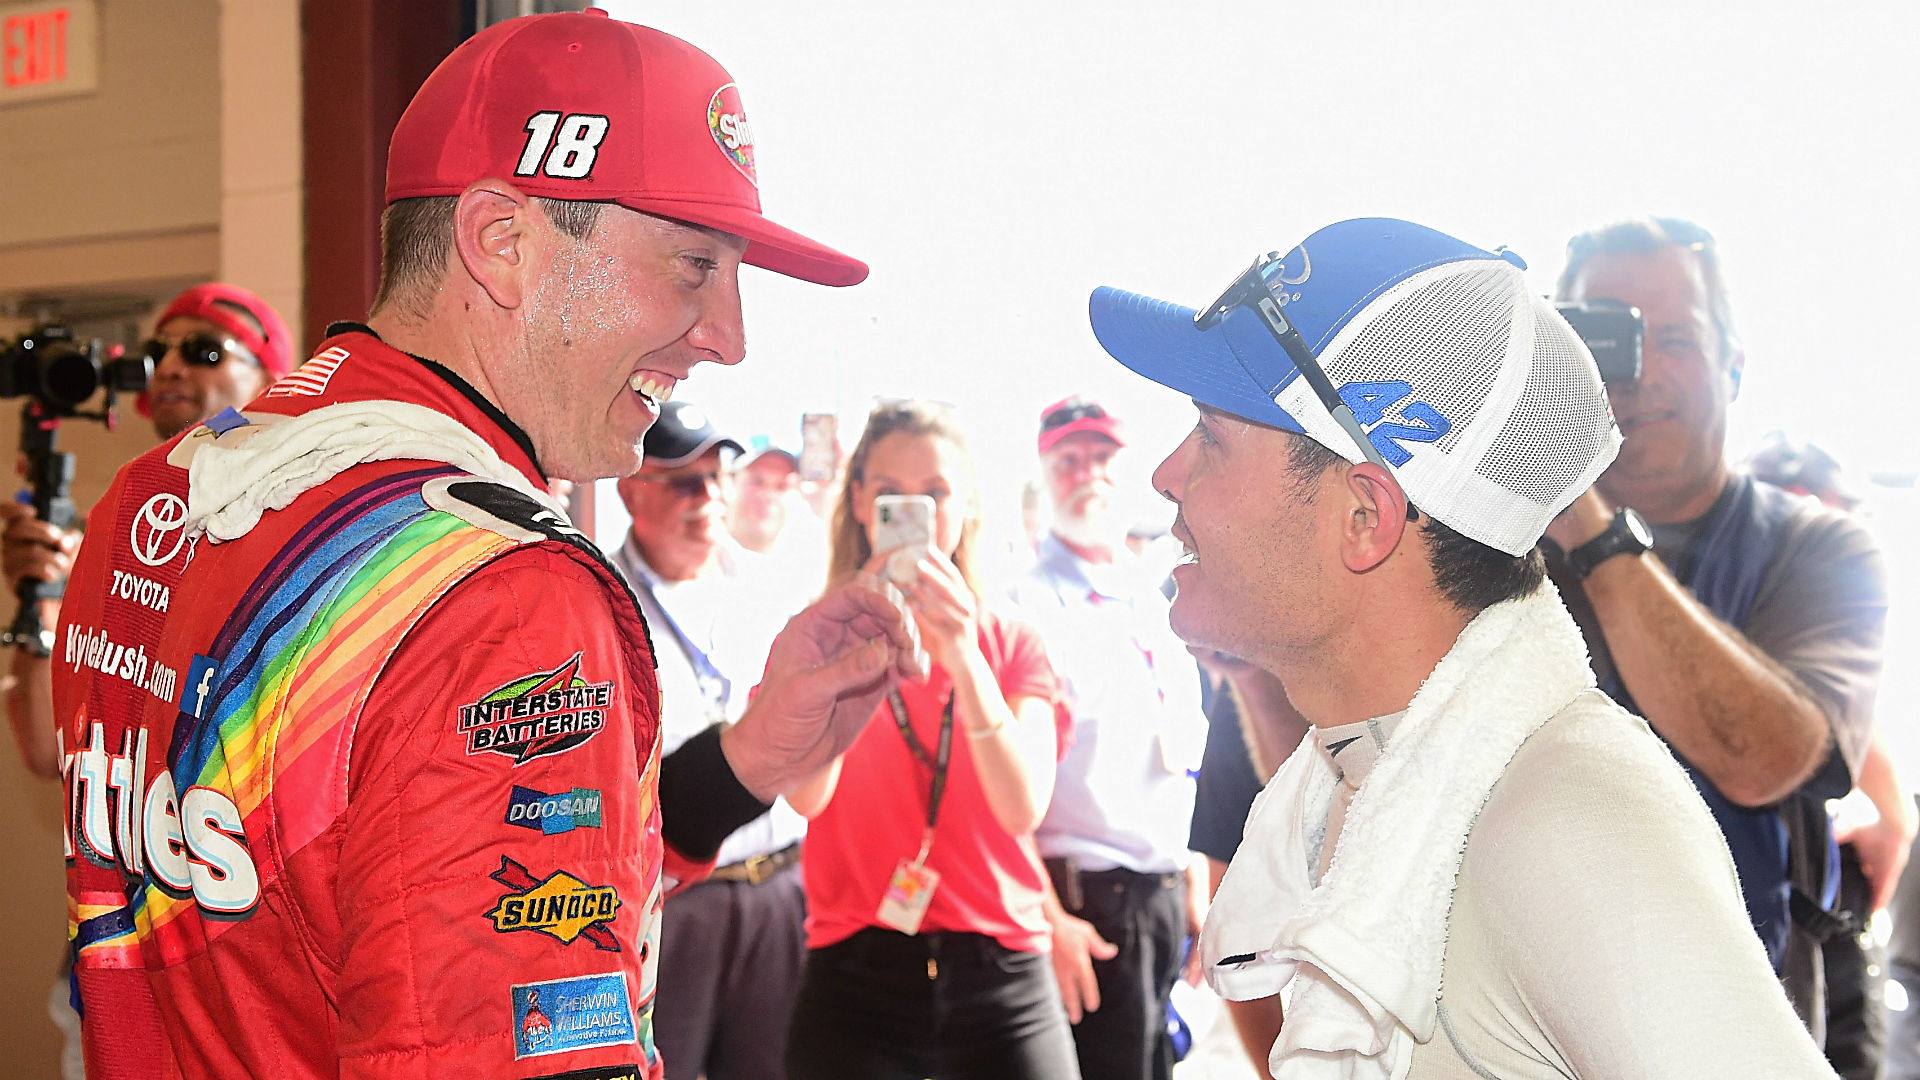 First win by Jones gives NASCAR a needed bump